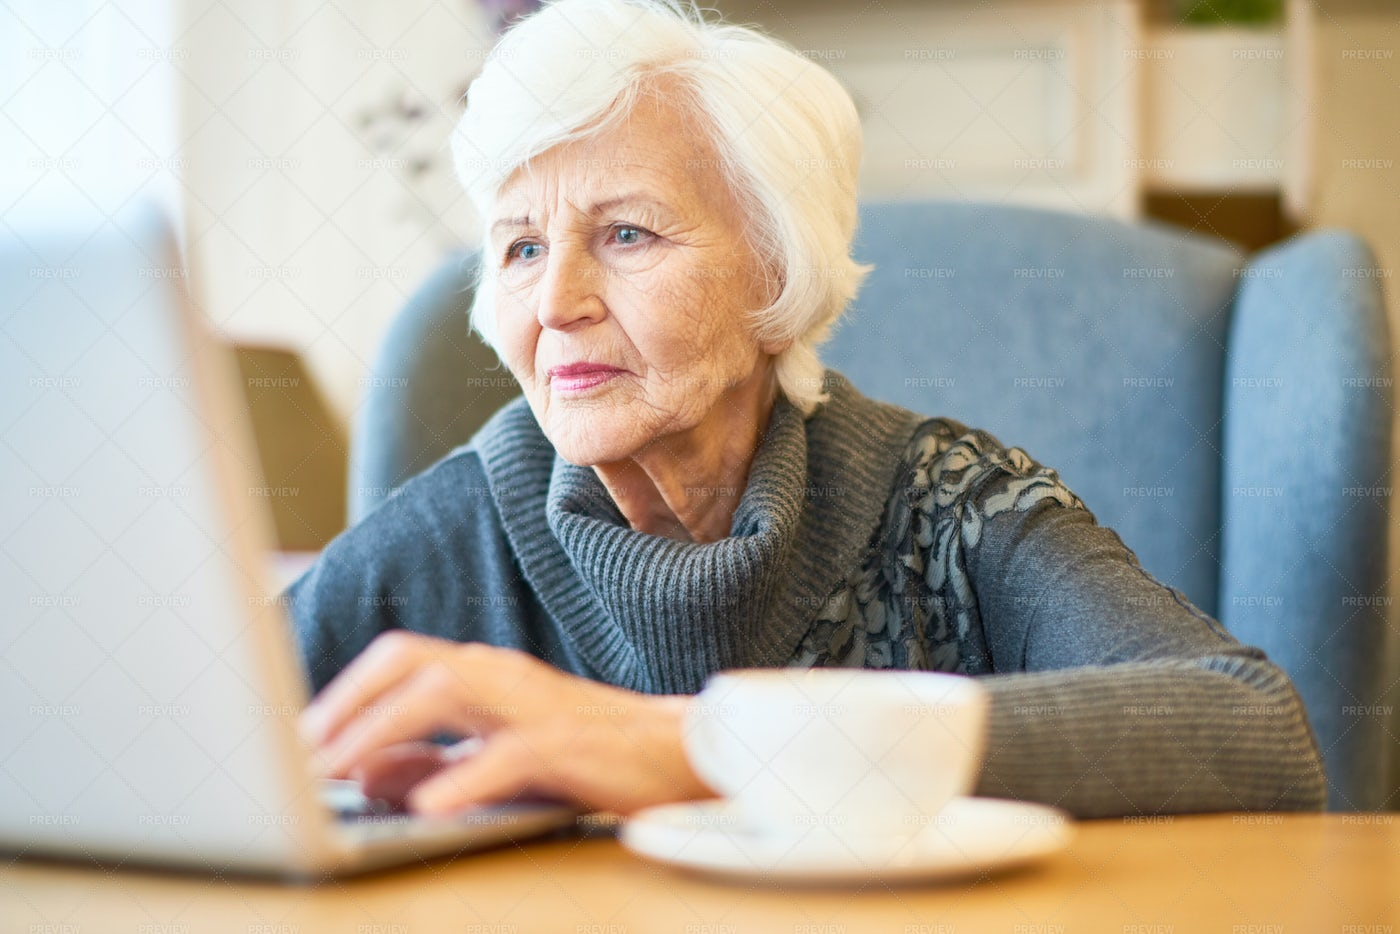 Senior Manager Wrapped Up In Work: Stock Photos